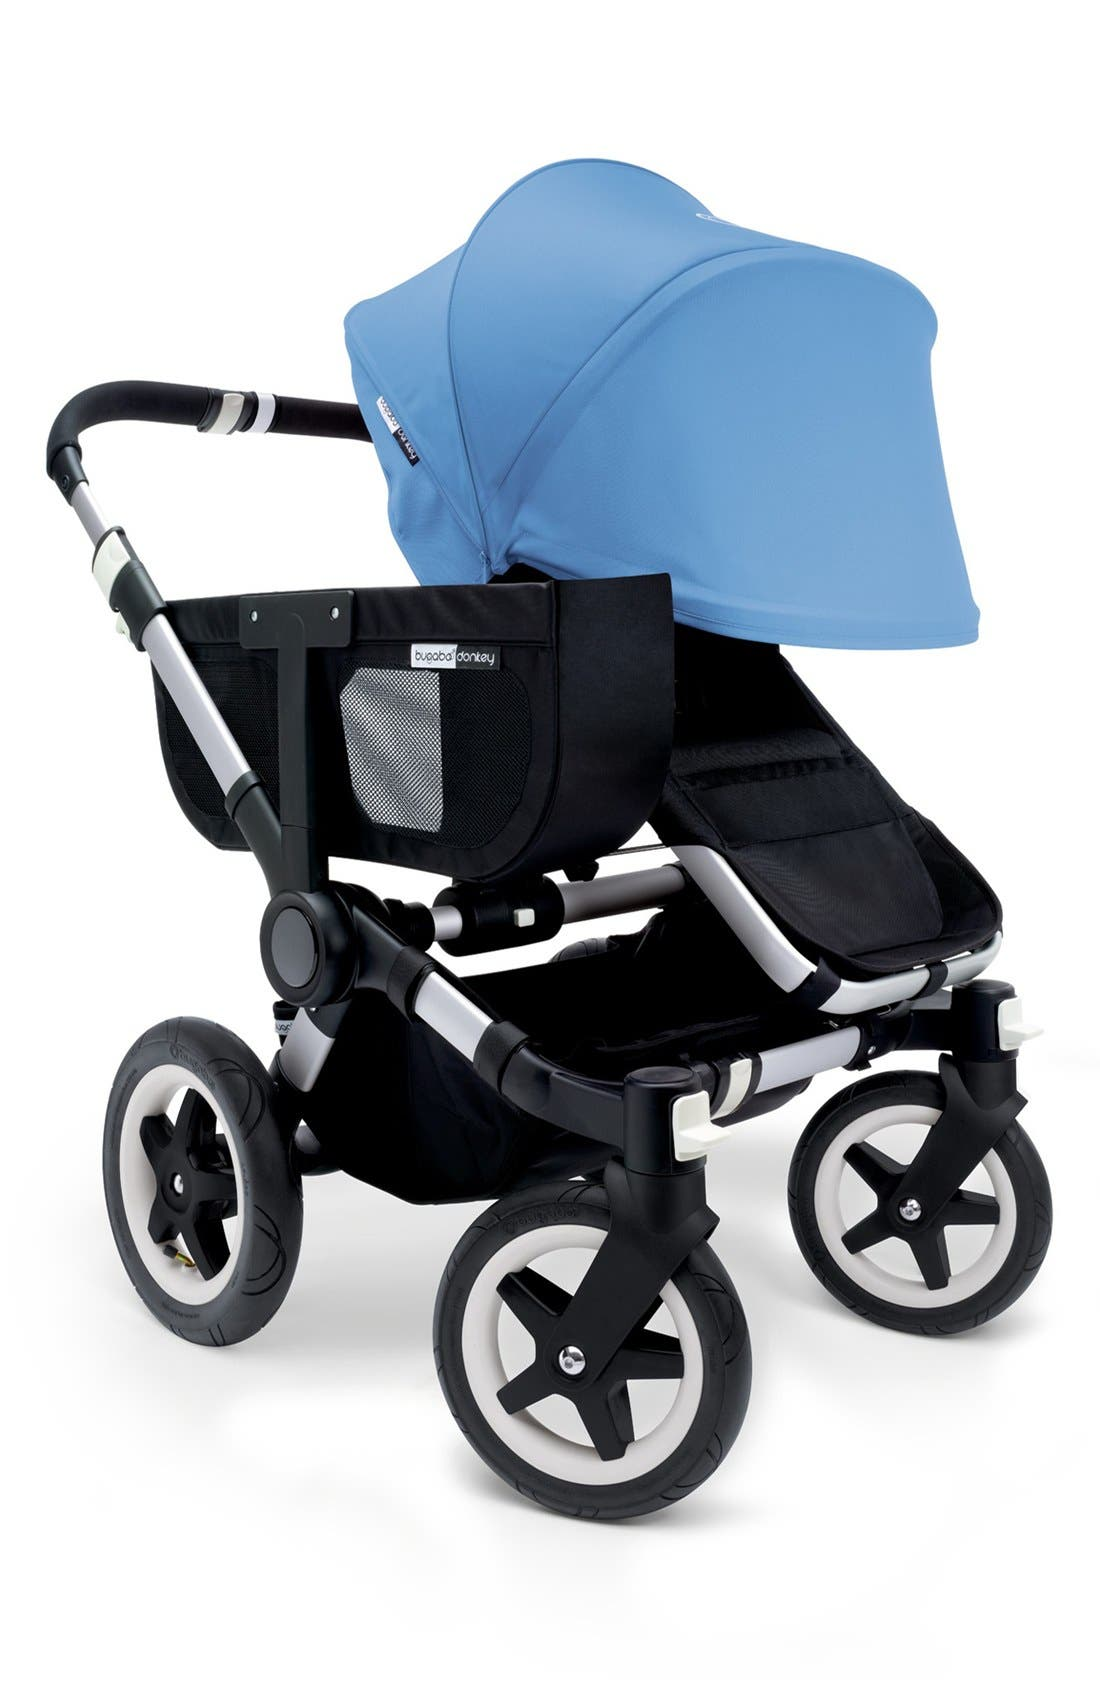 Alternate Image 1 Selected - Bugaboo 'Donkey' Extendable Sun Canopy